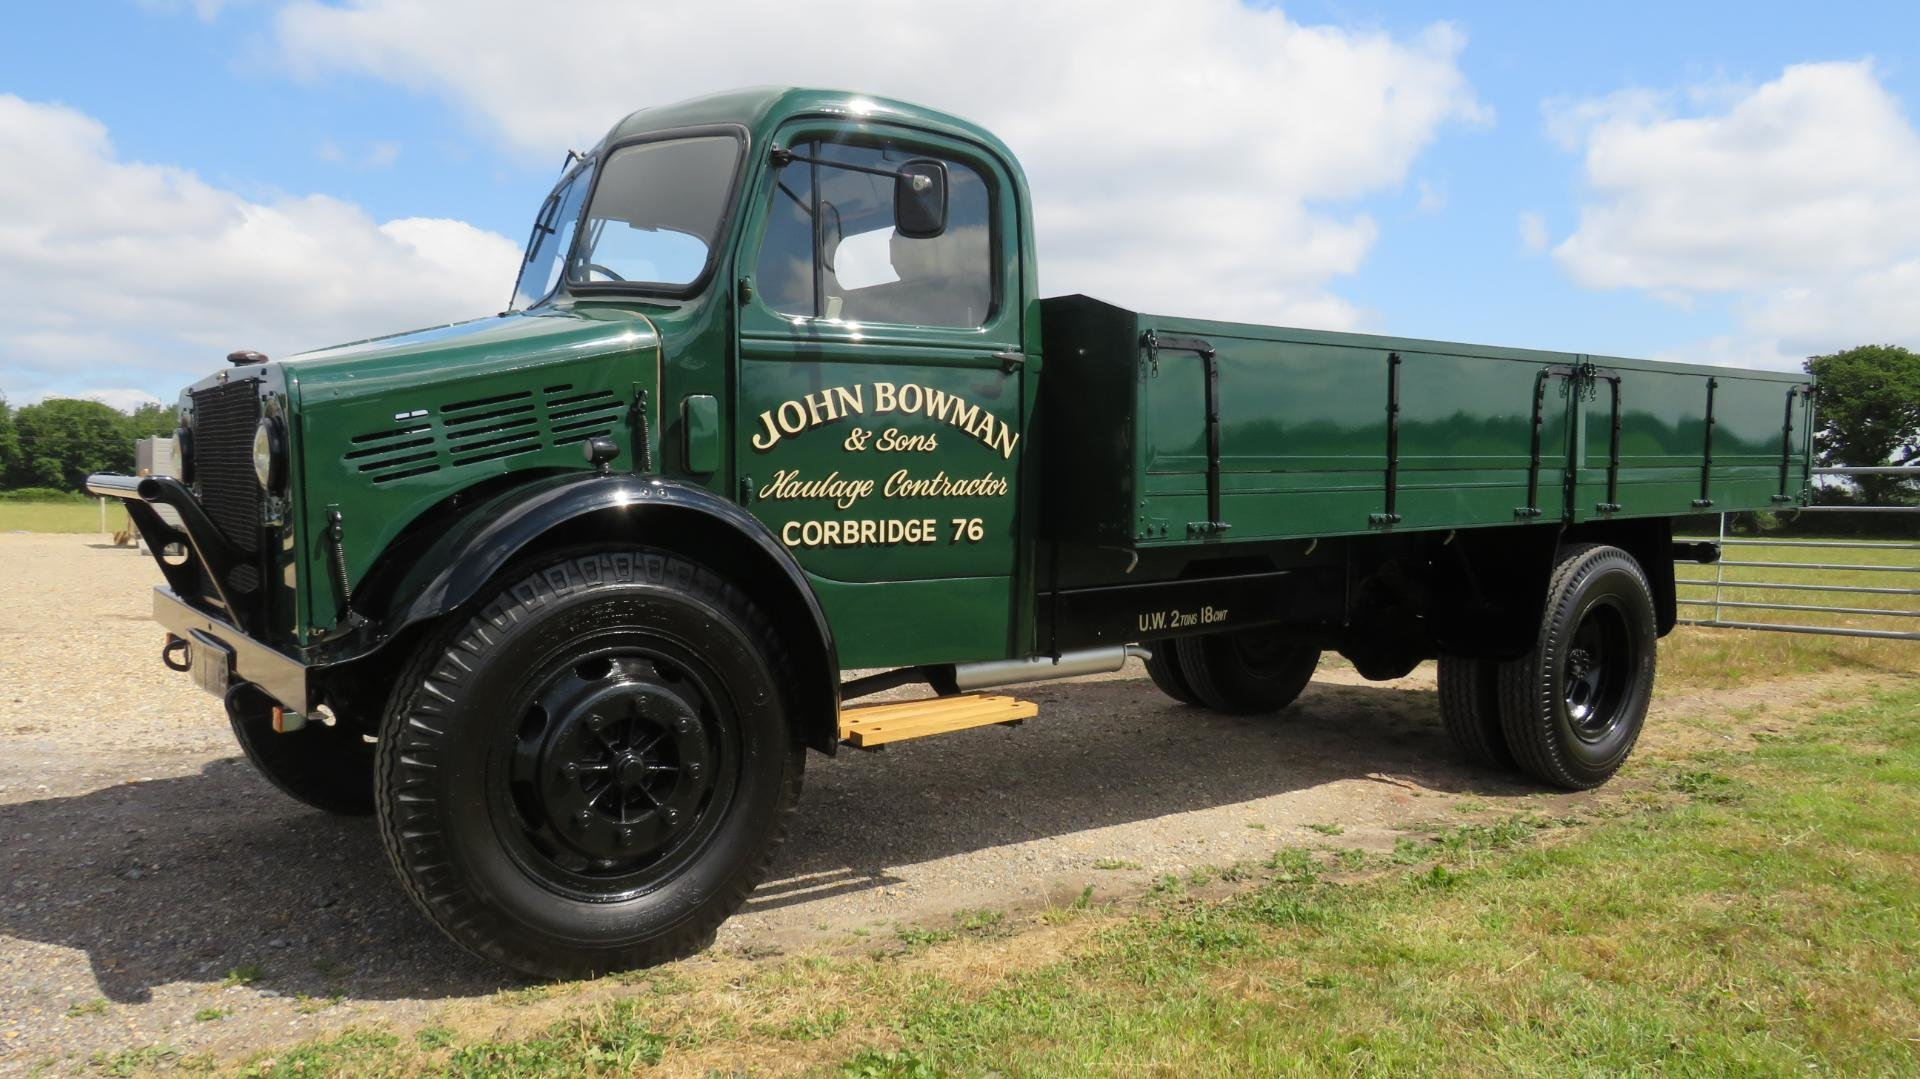 1943 Bedford OWLD TRUCK DROP SIDE BODY RESTORED For Sale (picture 1 of 1)